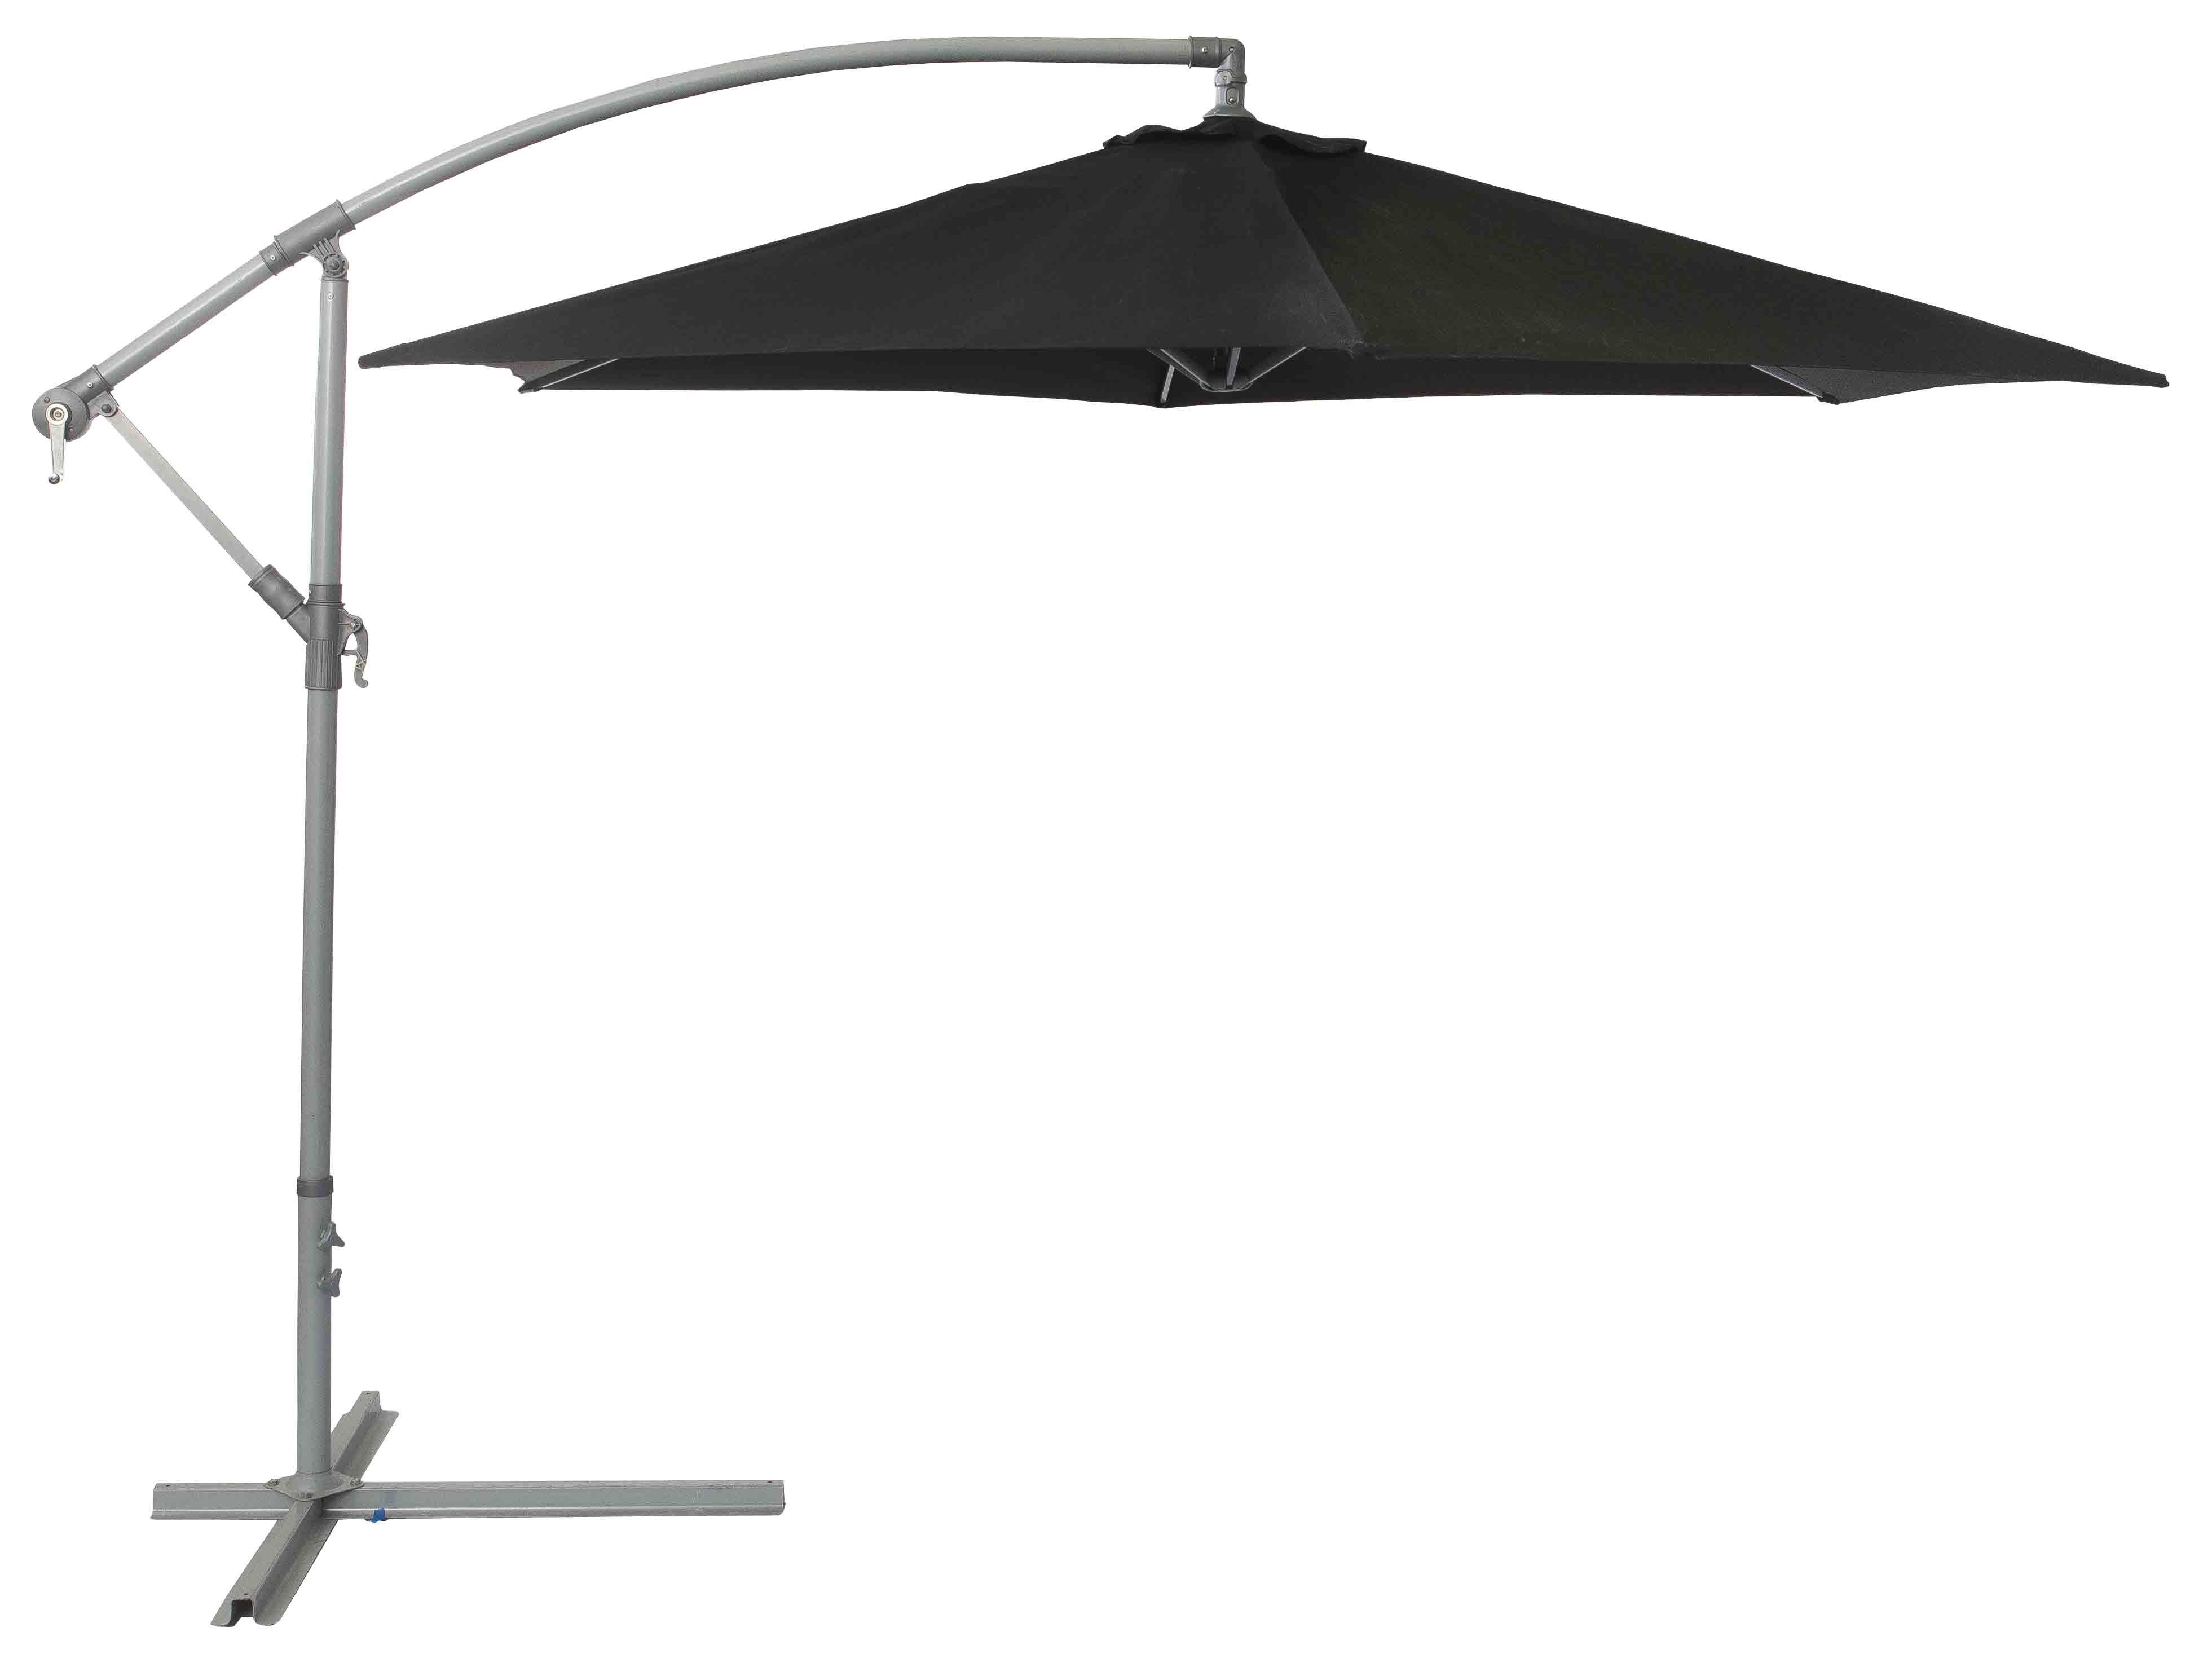 Cantilever Parasol Free standing crank handled black parasol with